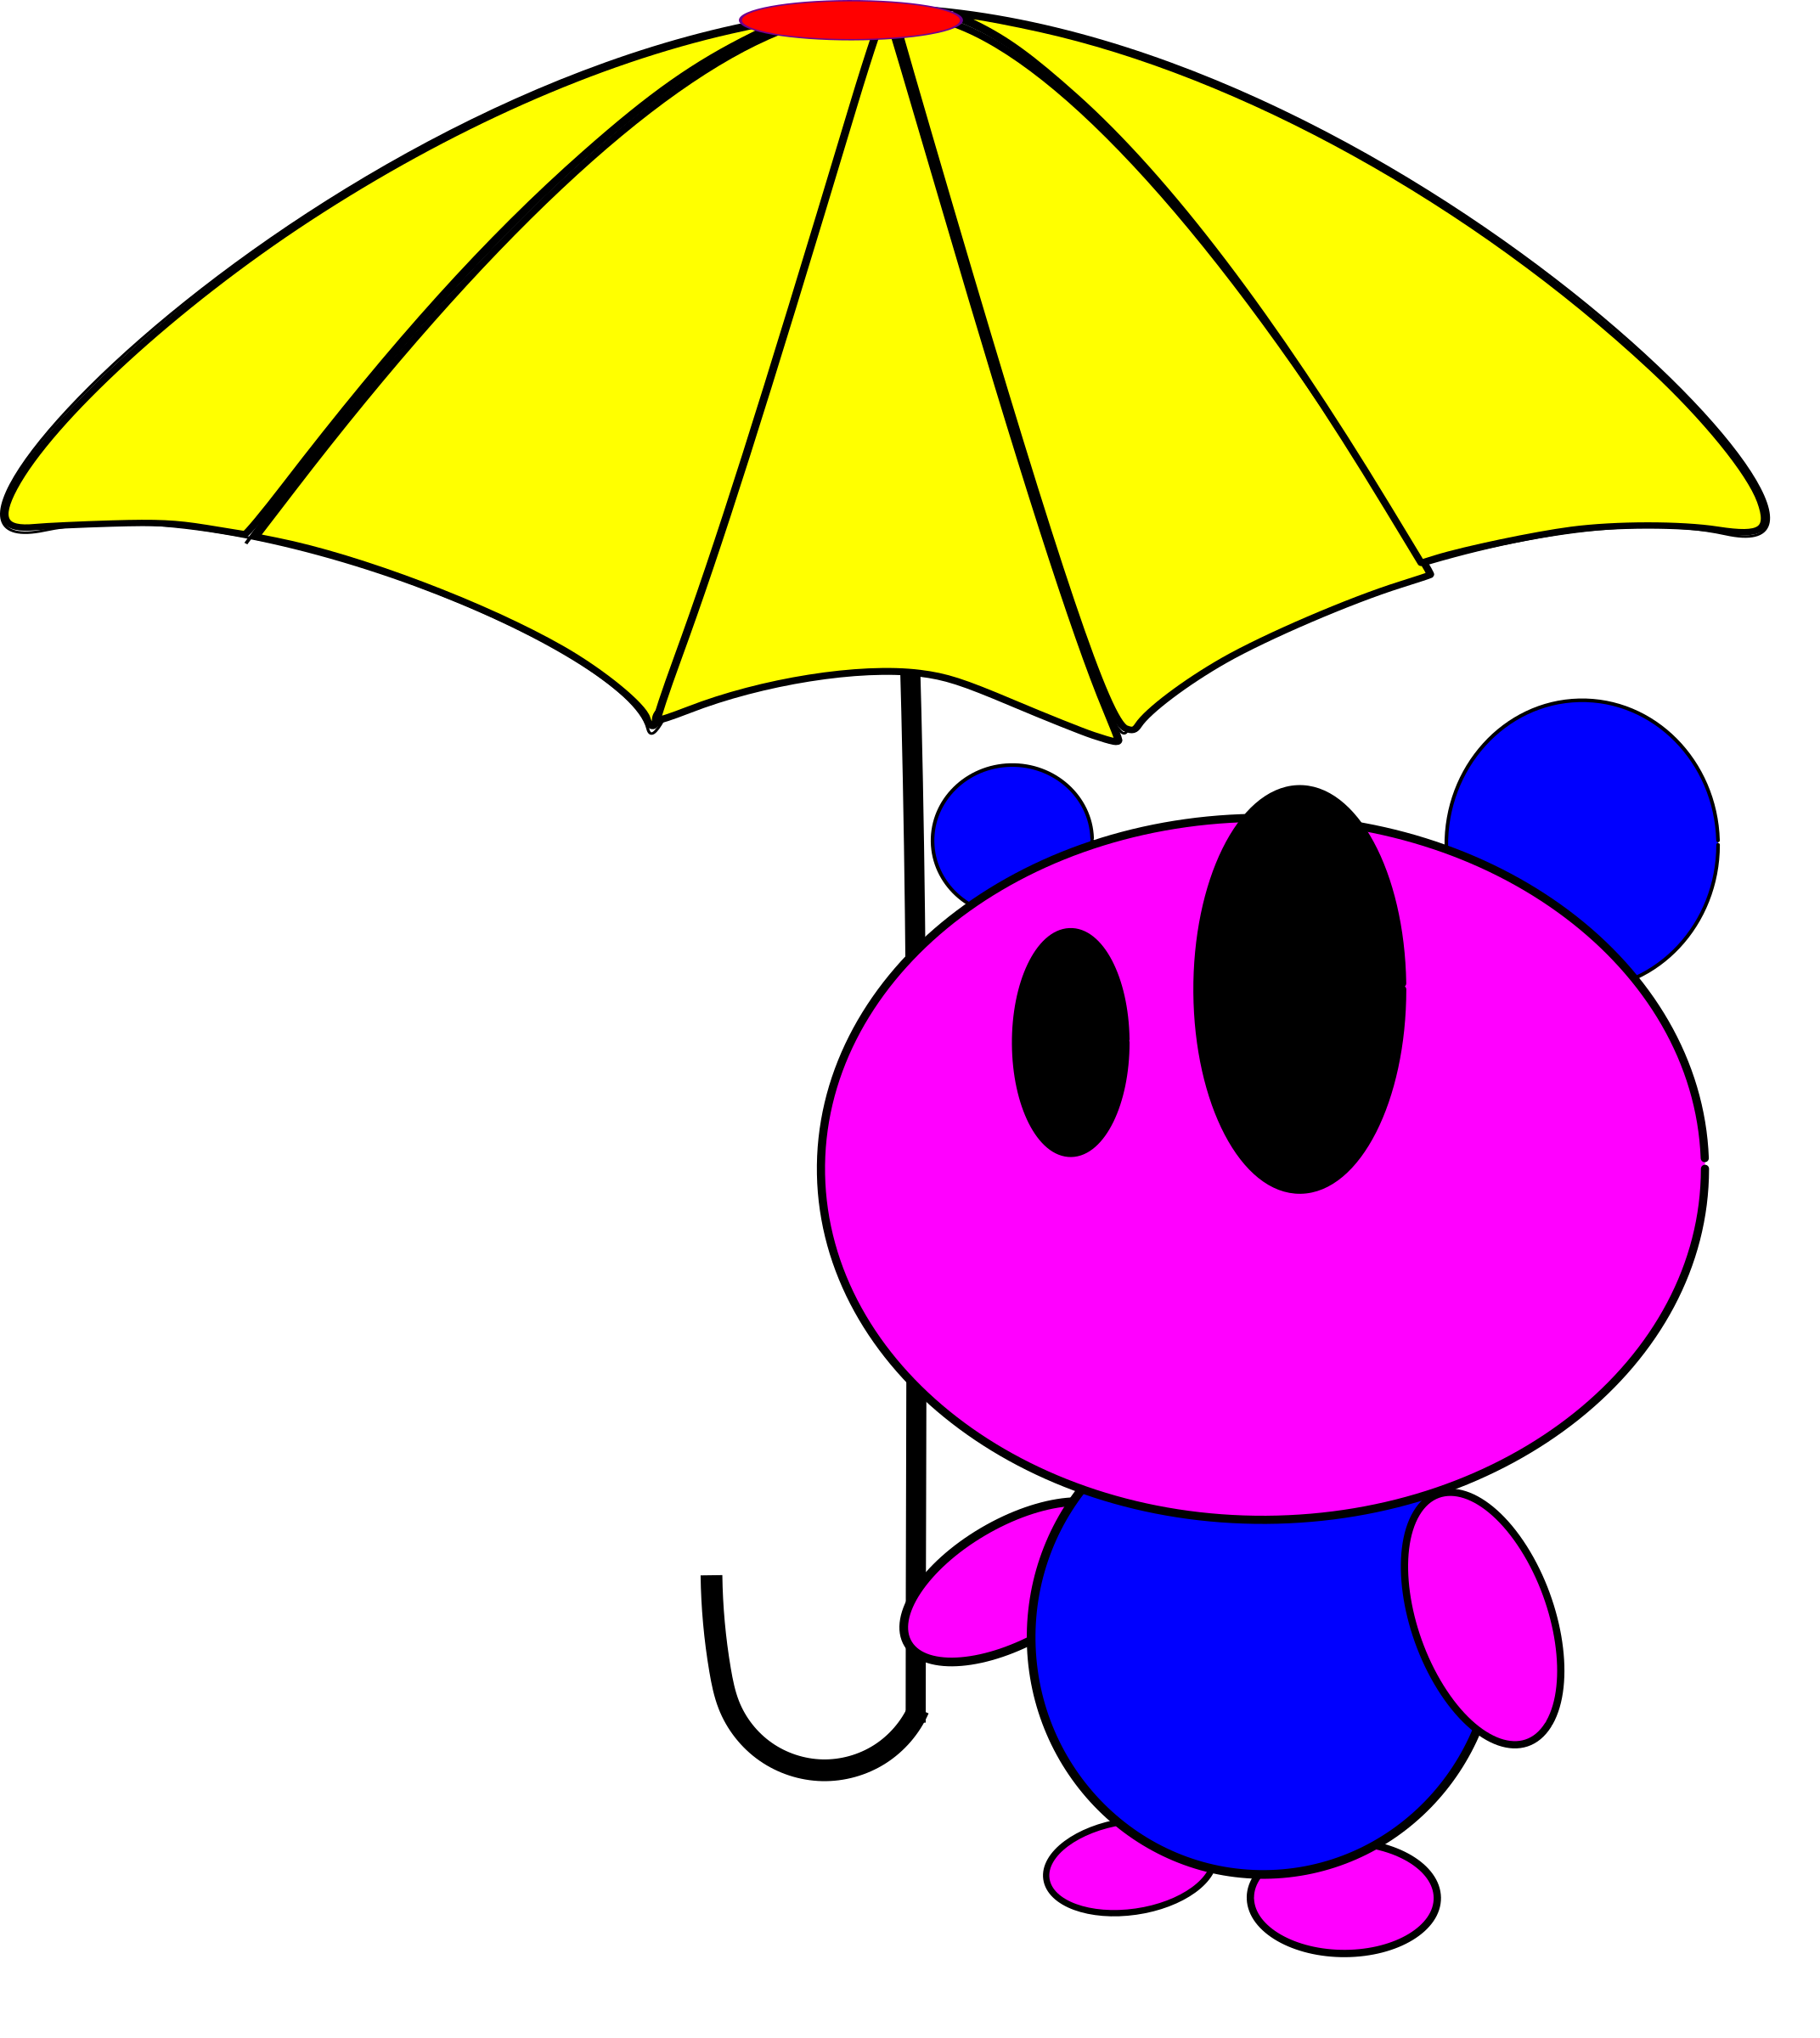 bear with umbrella by lkamming